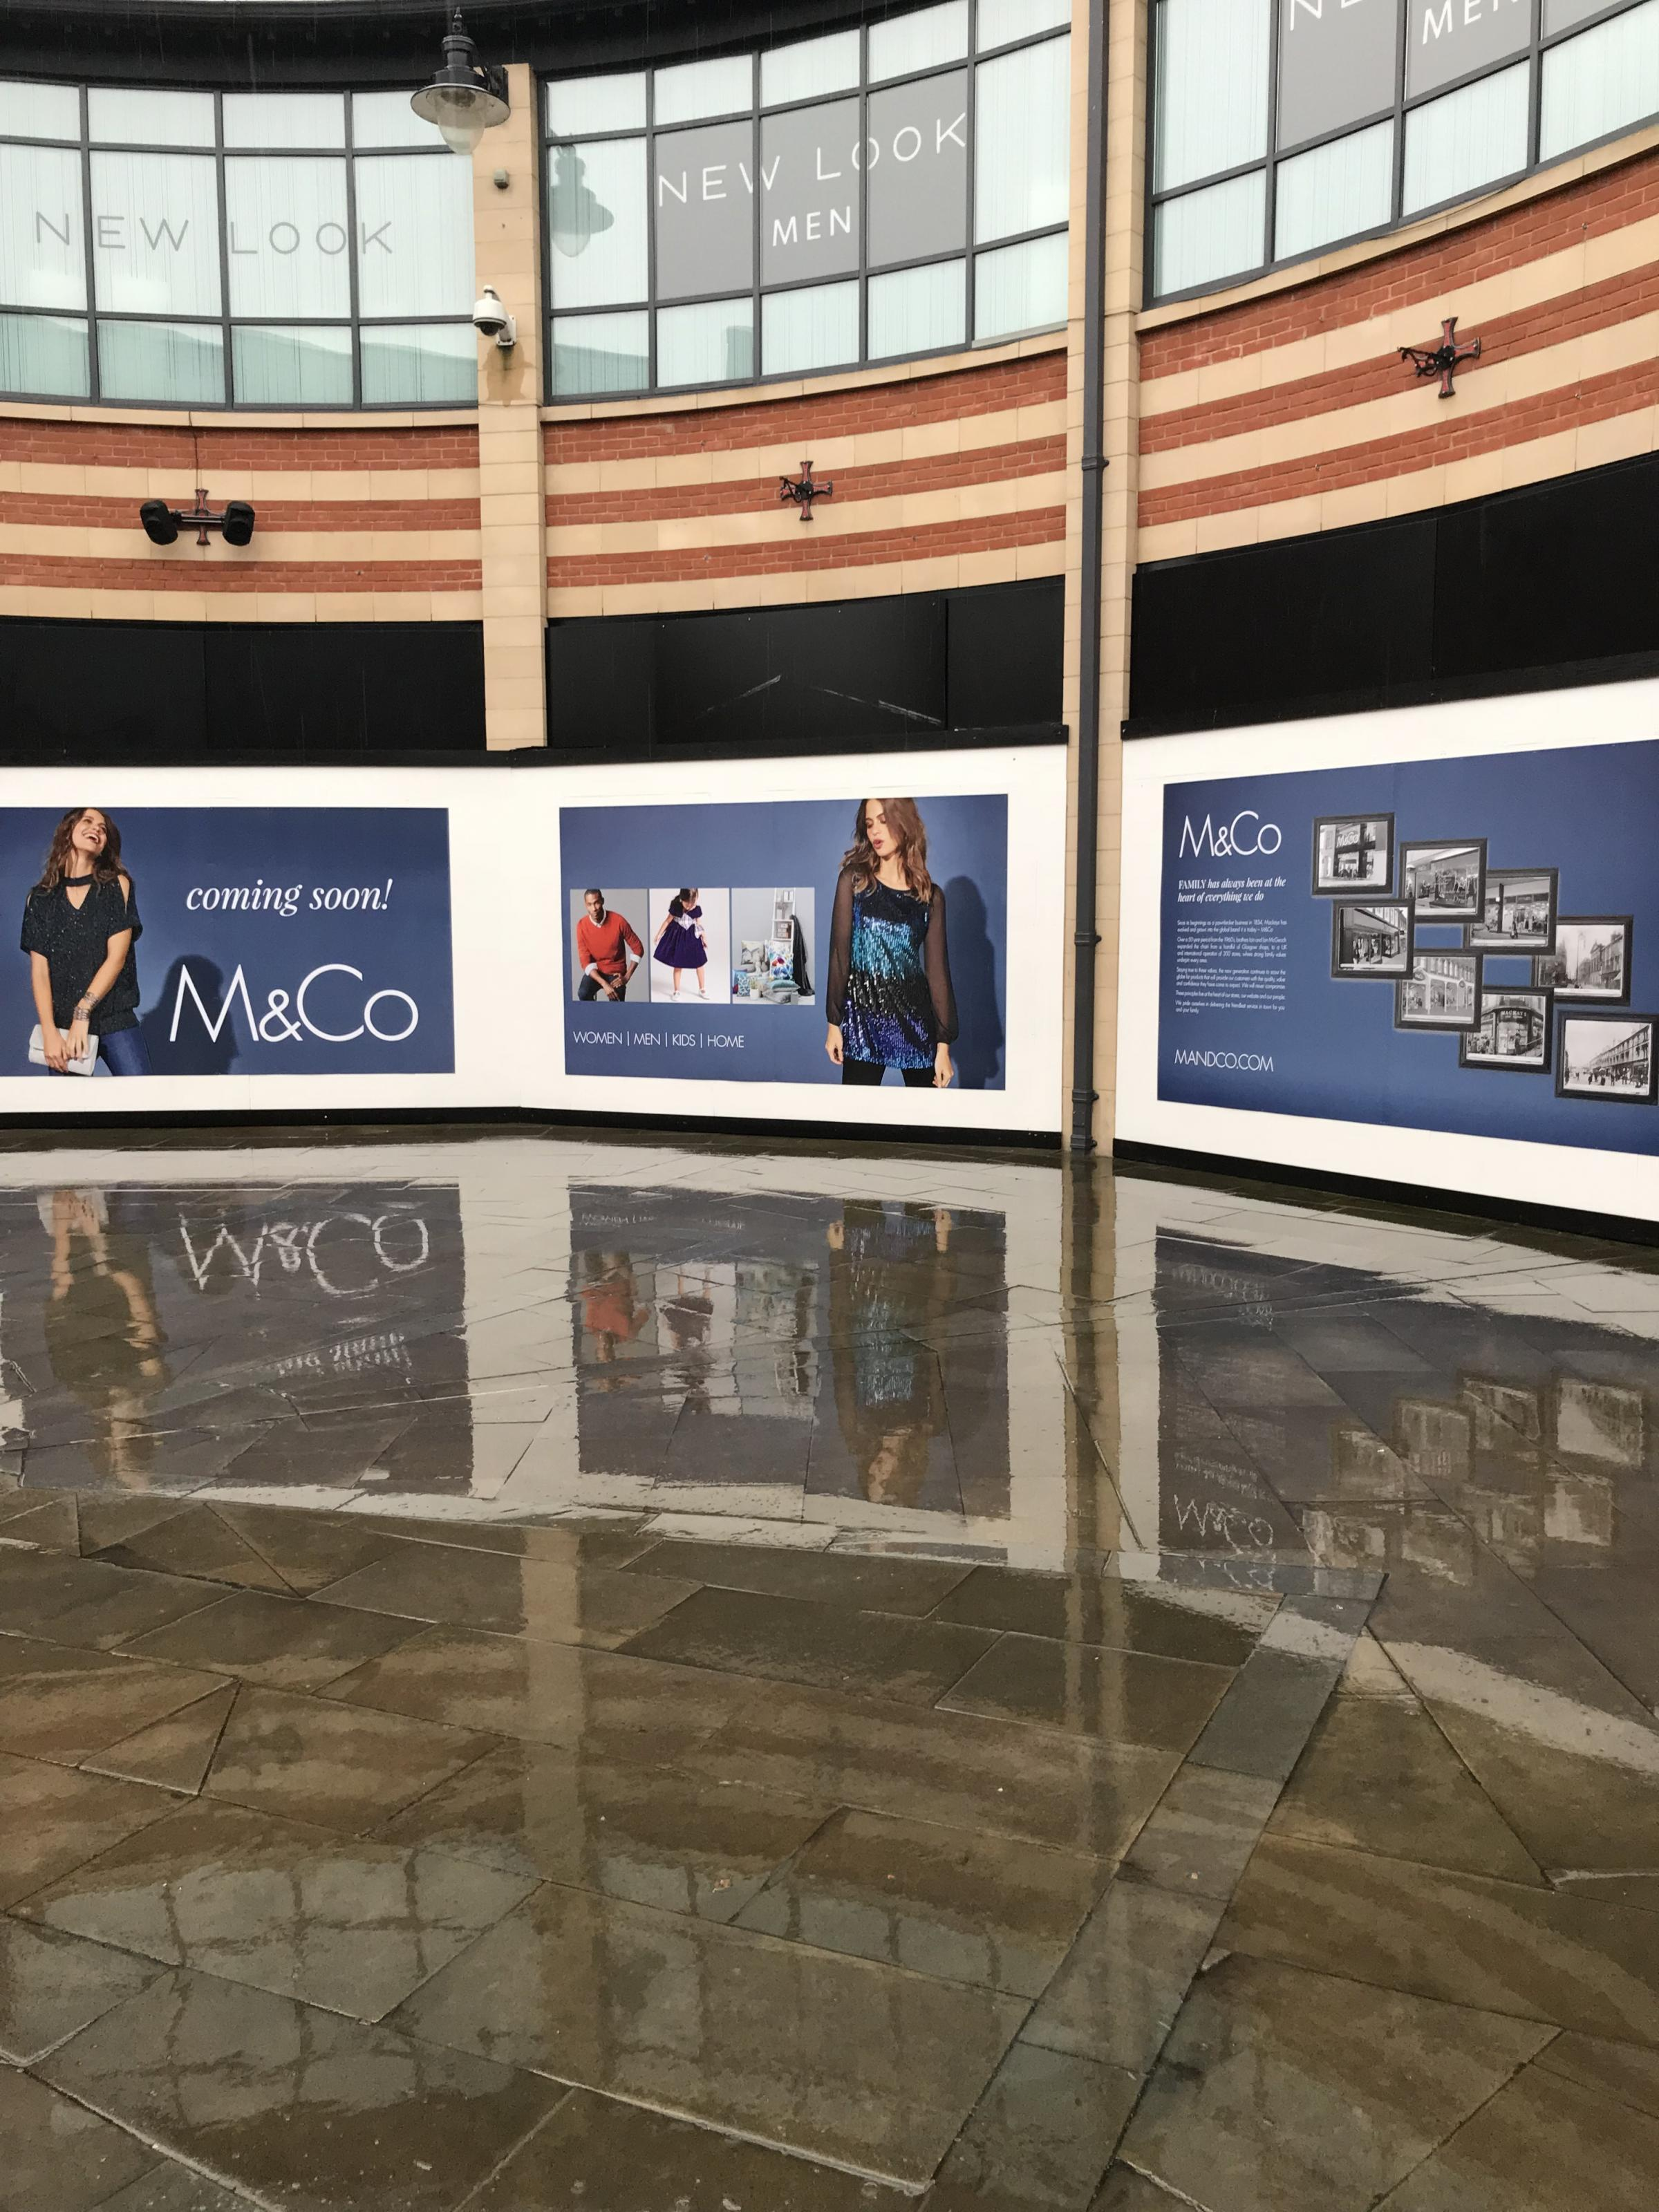 M Co To Open New 30 Job Store In Former Bhs Premises In Durham The